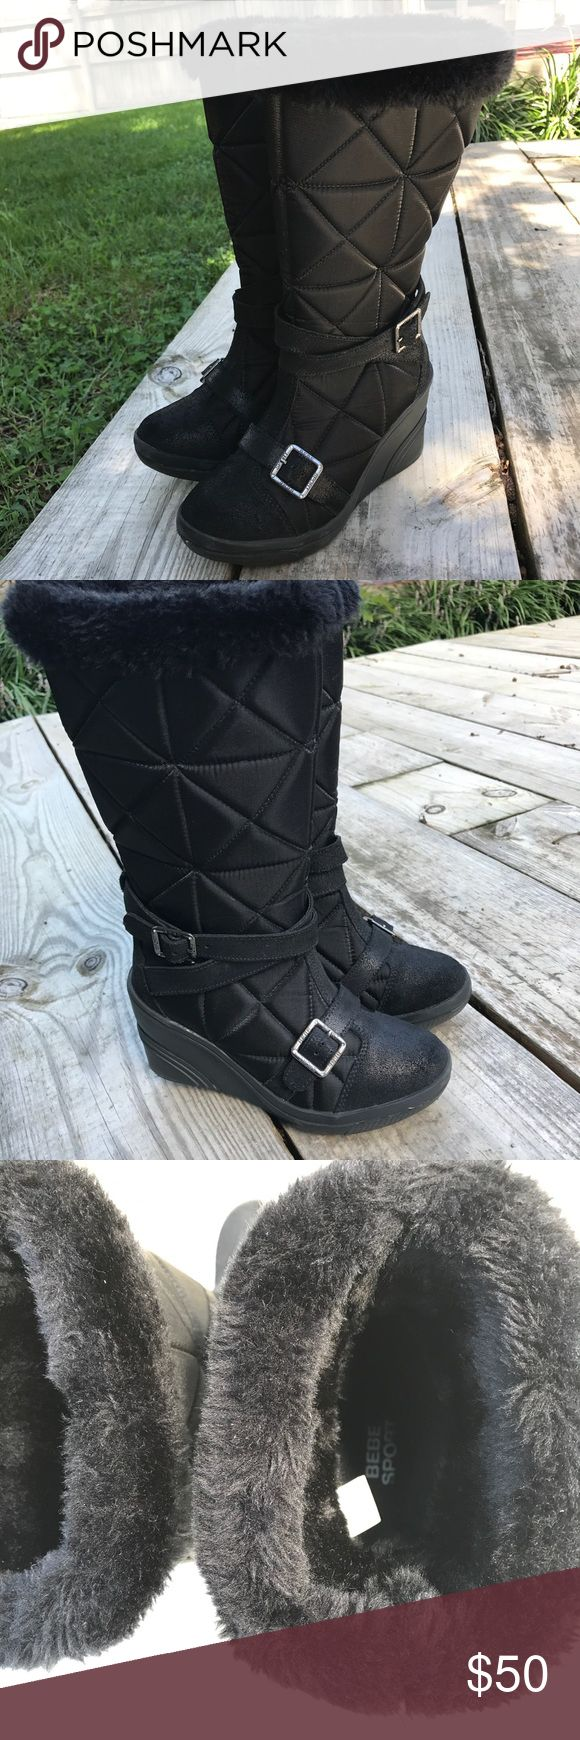 """👢Bebe Sport Quilted wedge waterproof snow boots Excellent condition. Strappy calf boot. Size 6 w/ 3"""" wedge. Vegan fur on top. Mixed materials. Silver toned hardware bebe Shoes Winter & Rain Boots"""